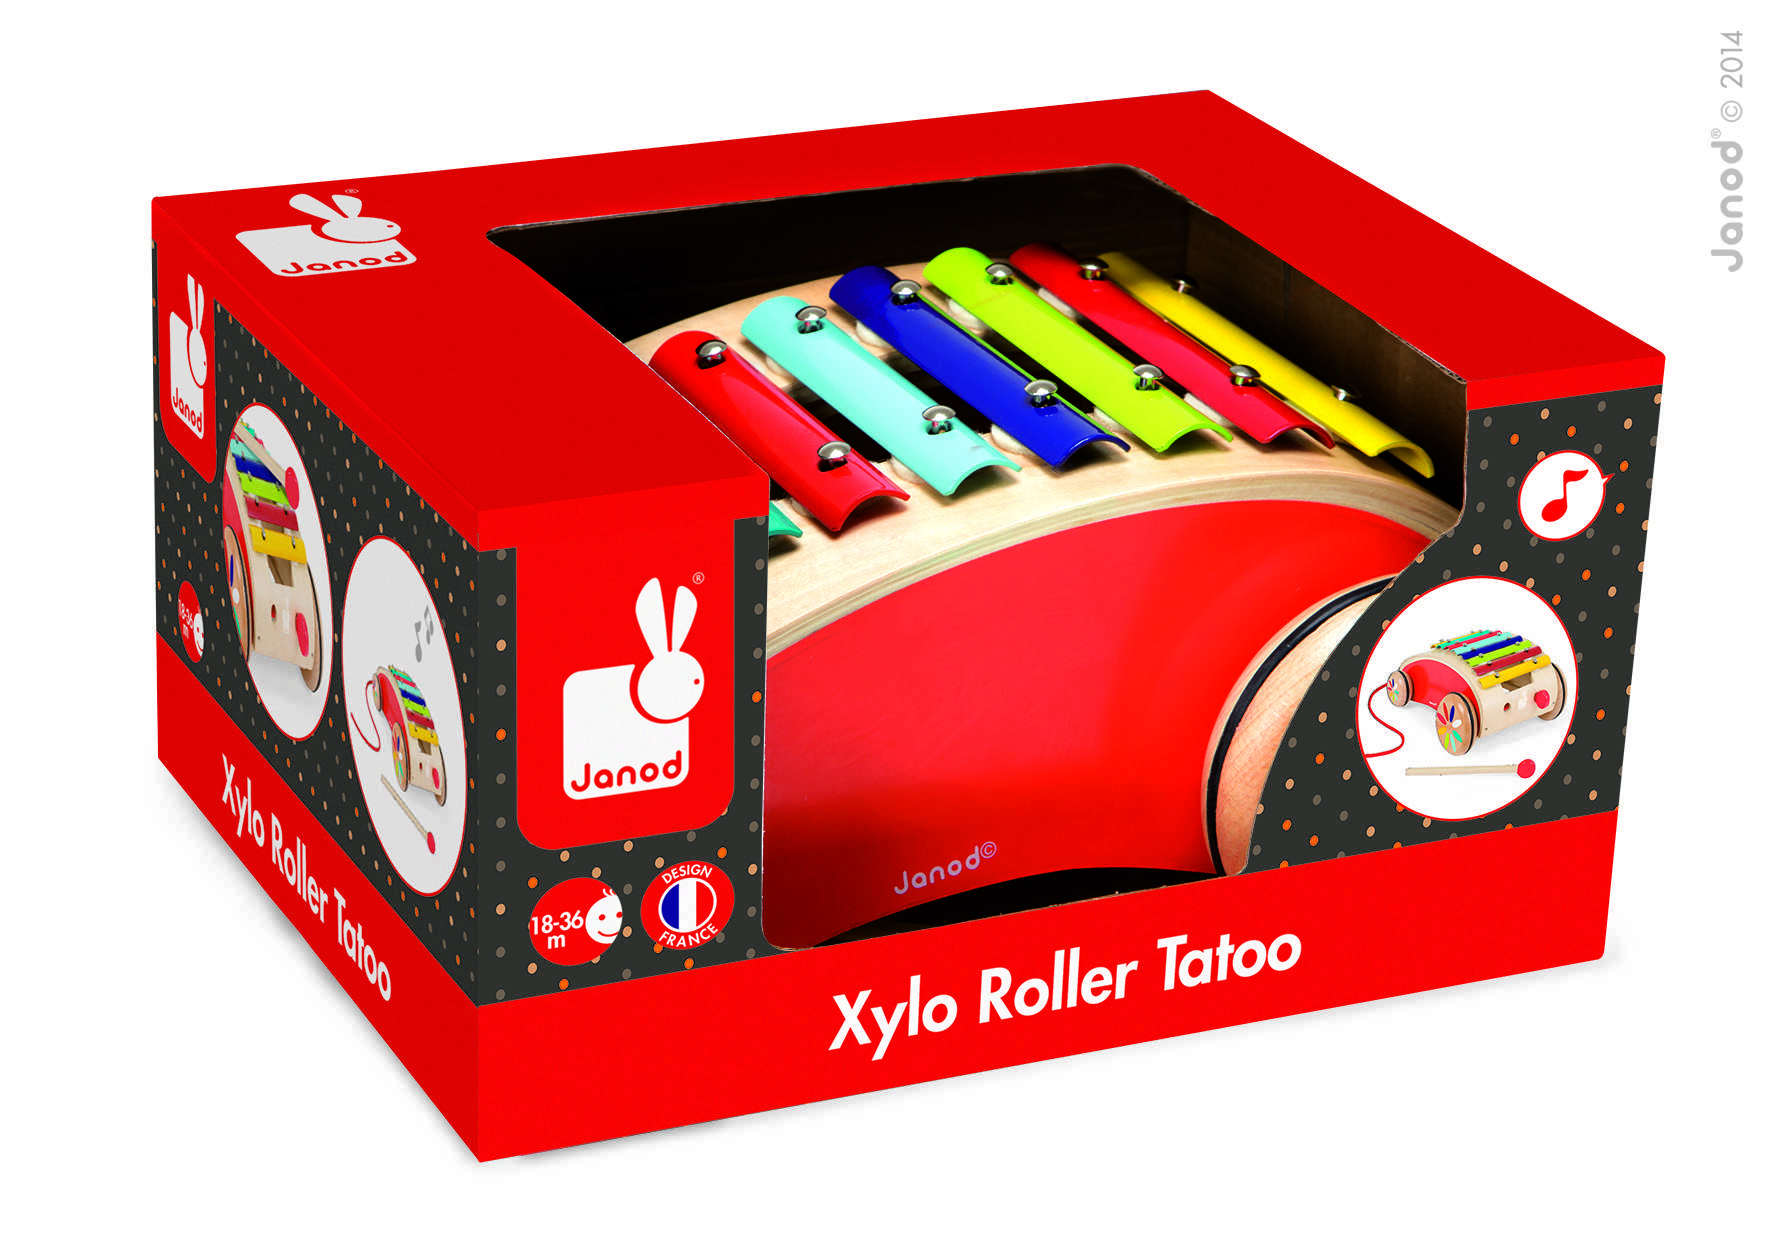 Xylo Roller Rouge Tattoo